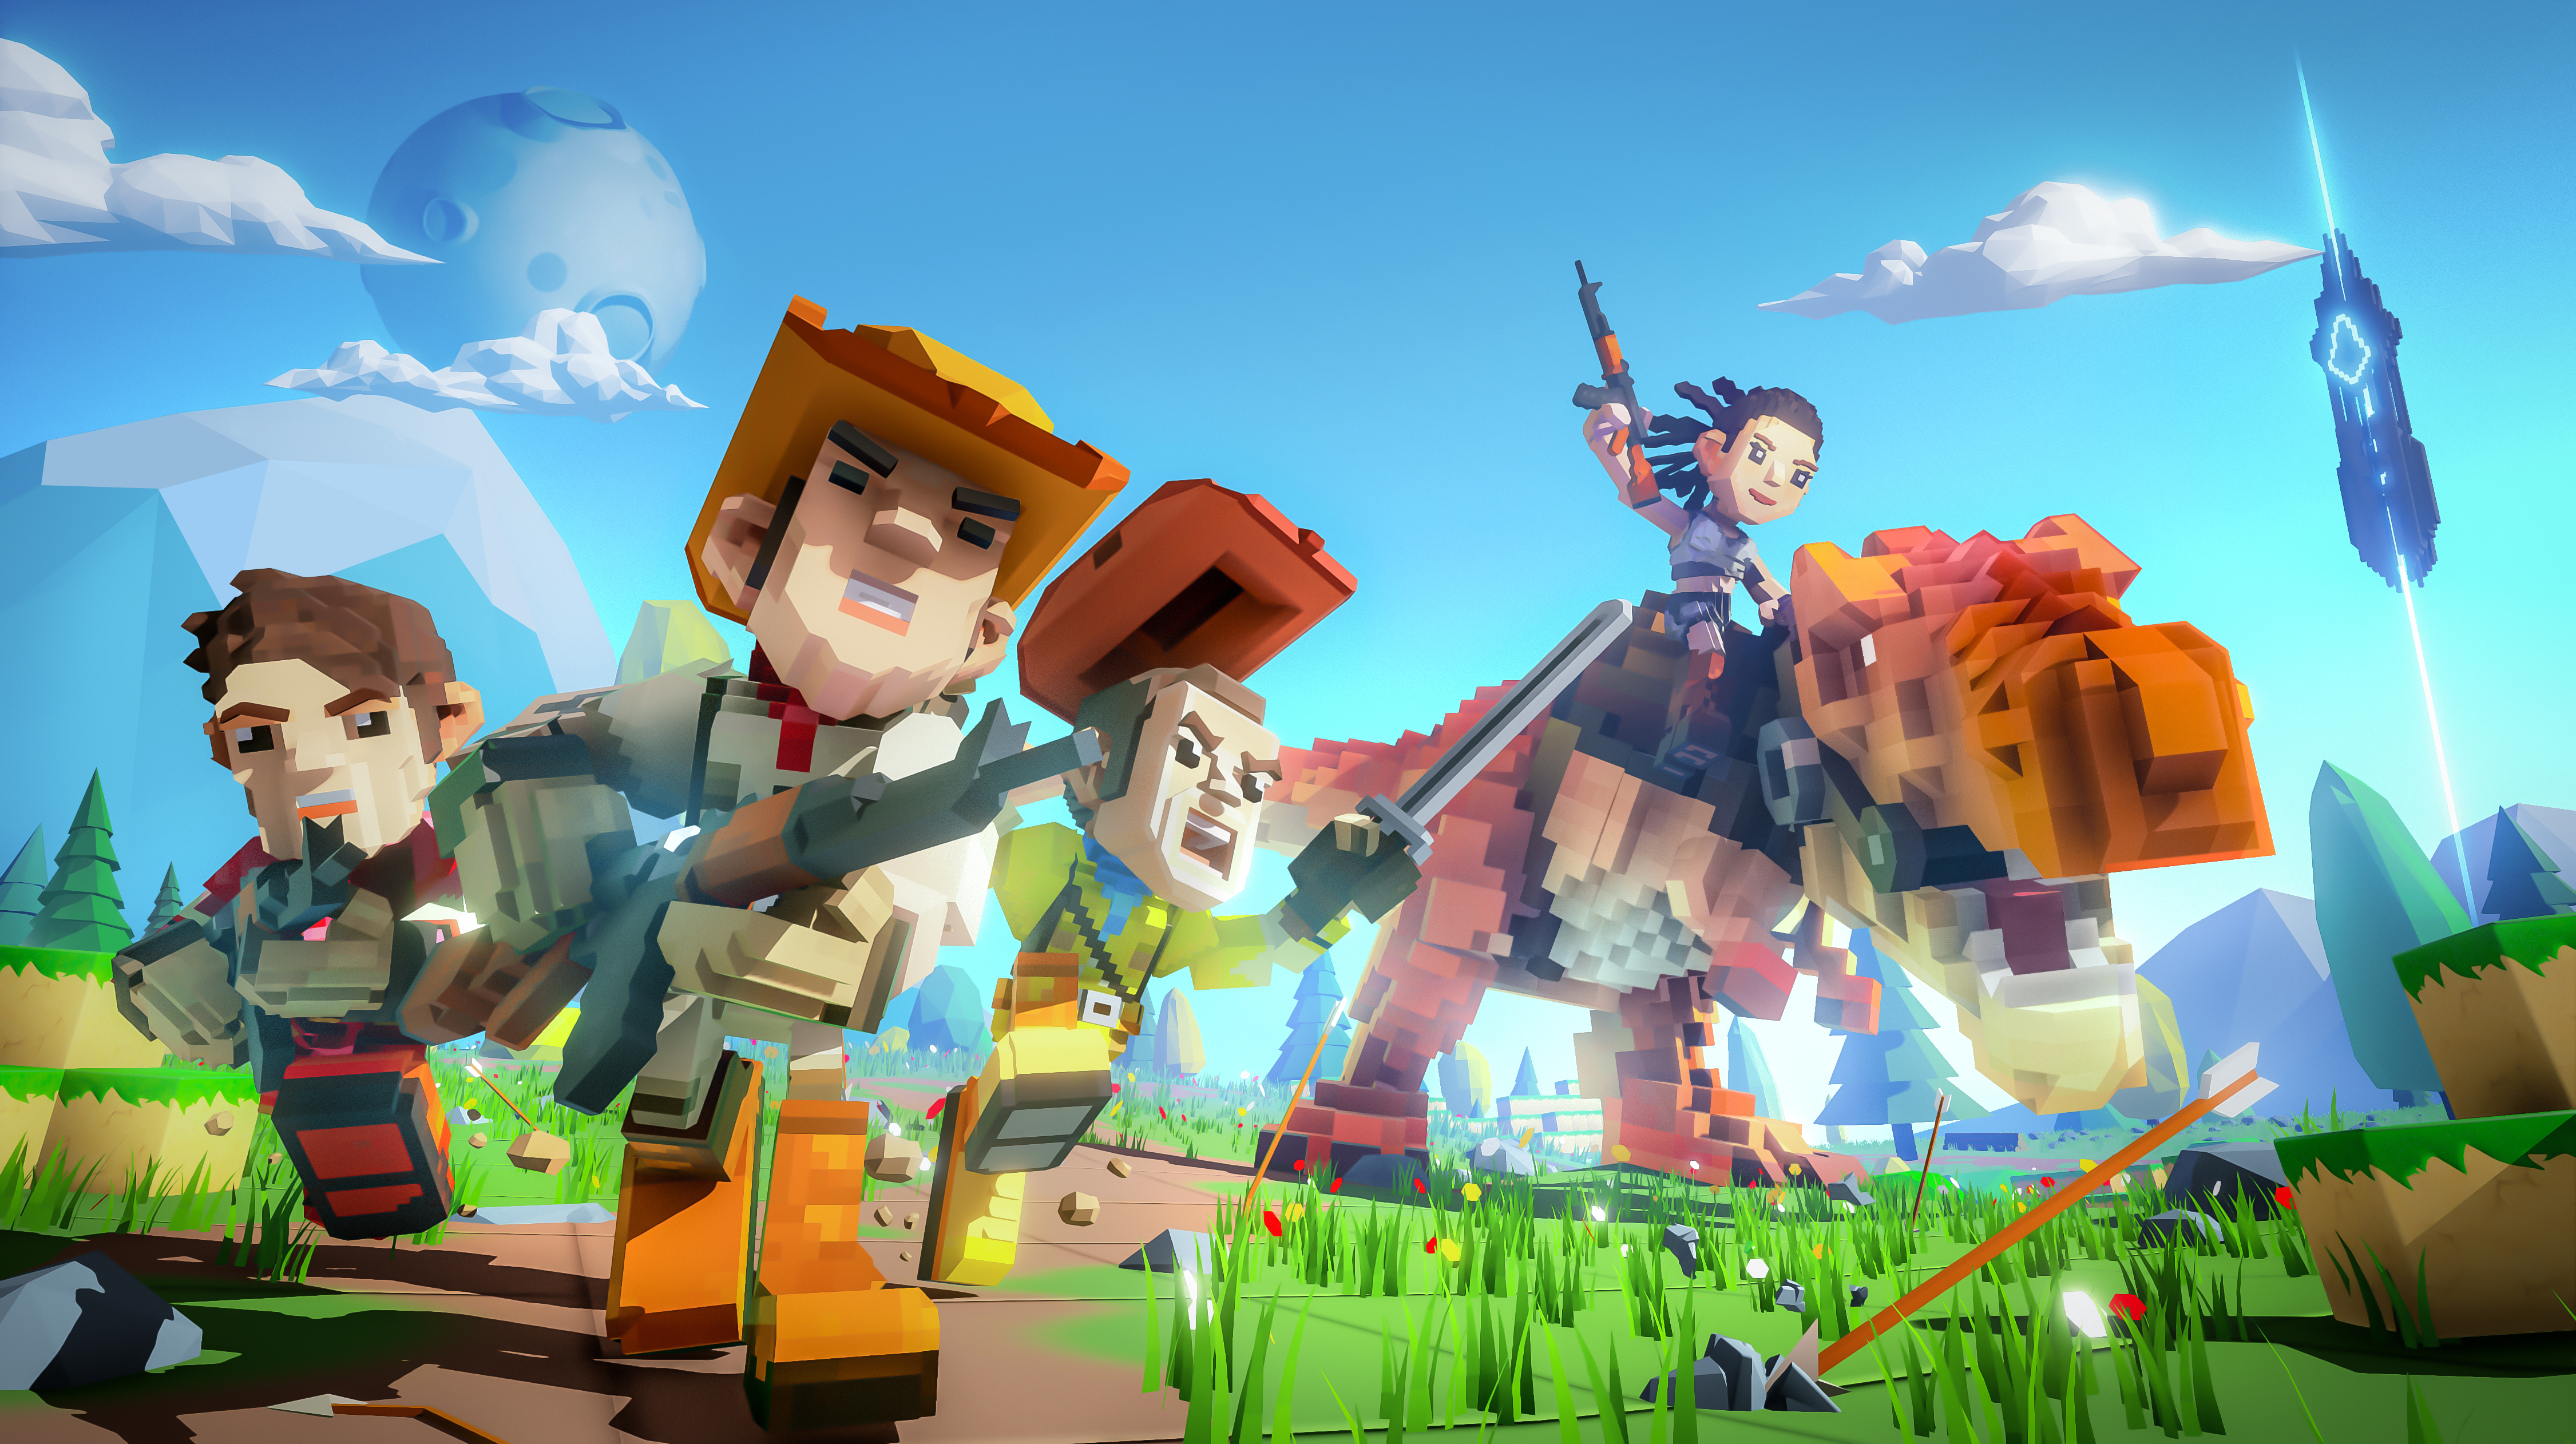 PixARK is Ready for a Full PC, PS4, Xbox One, and Nintendo Switch